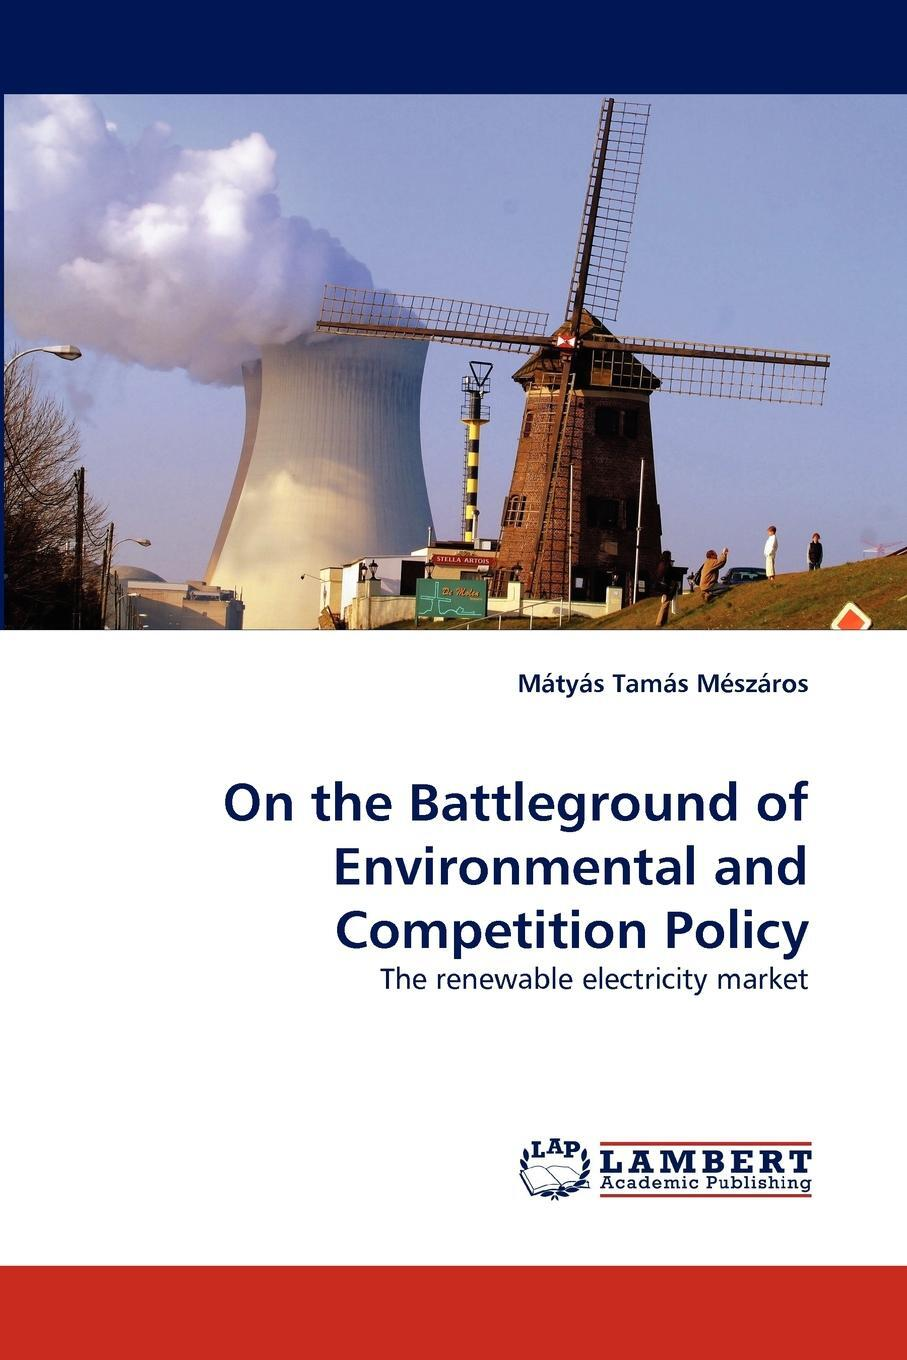 On the Battleground of Environmental and Competition Policy